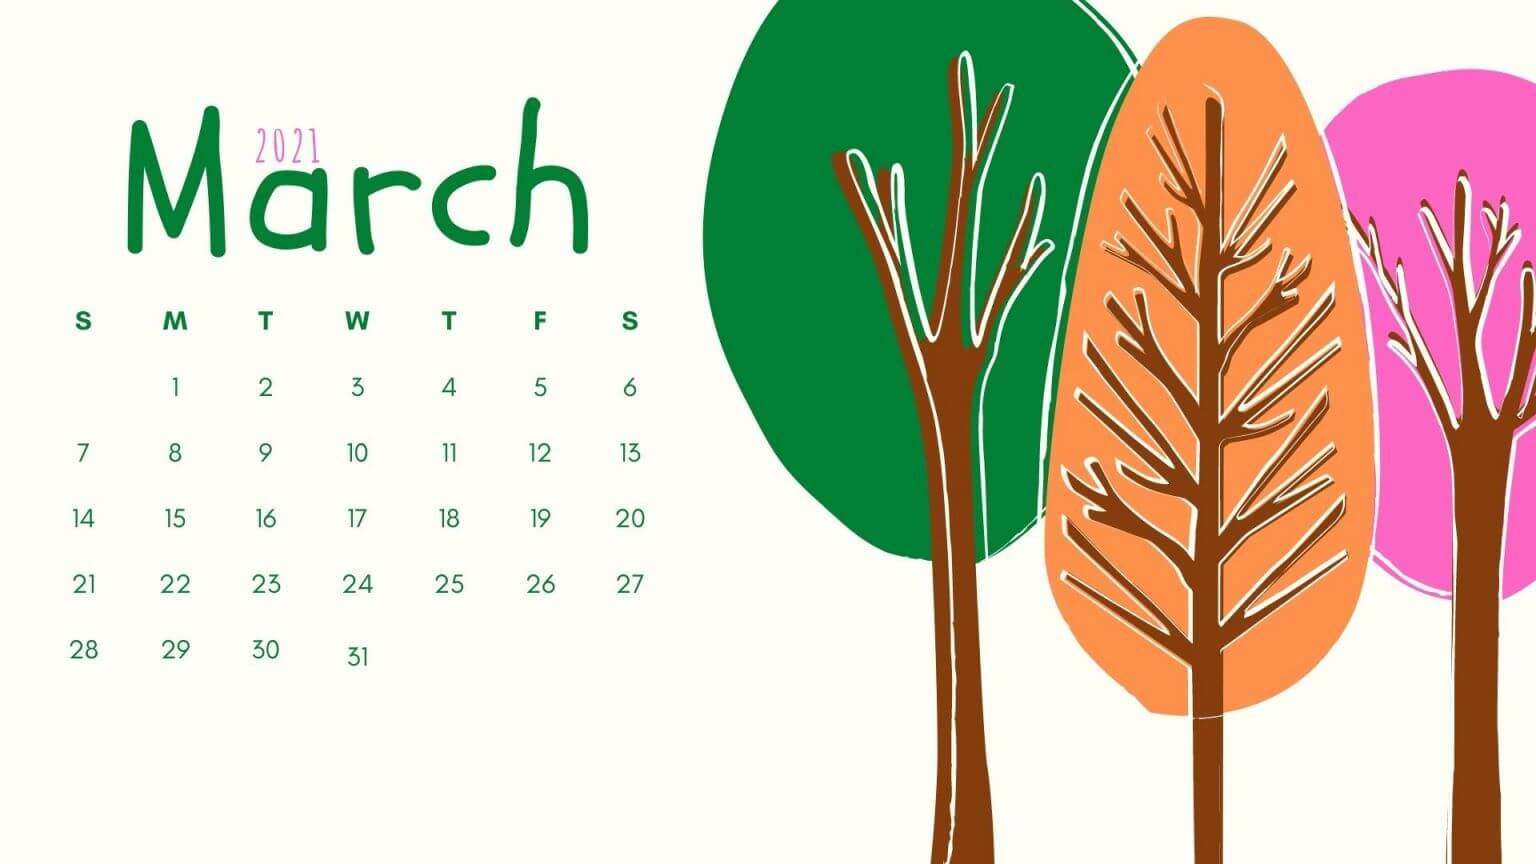 March 2021 Calendar Screensaver